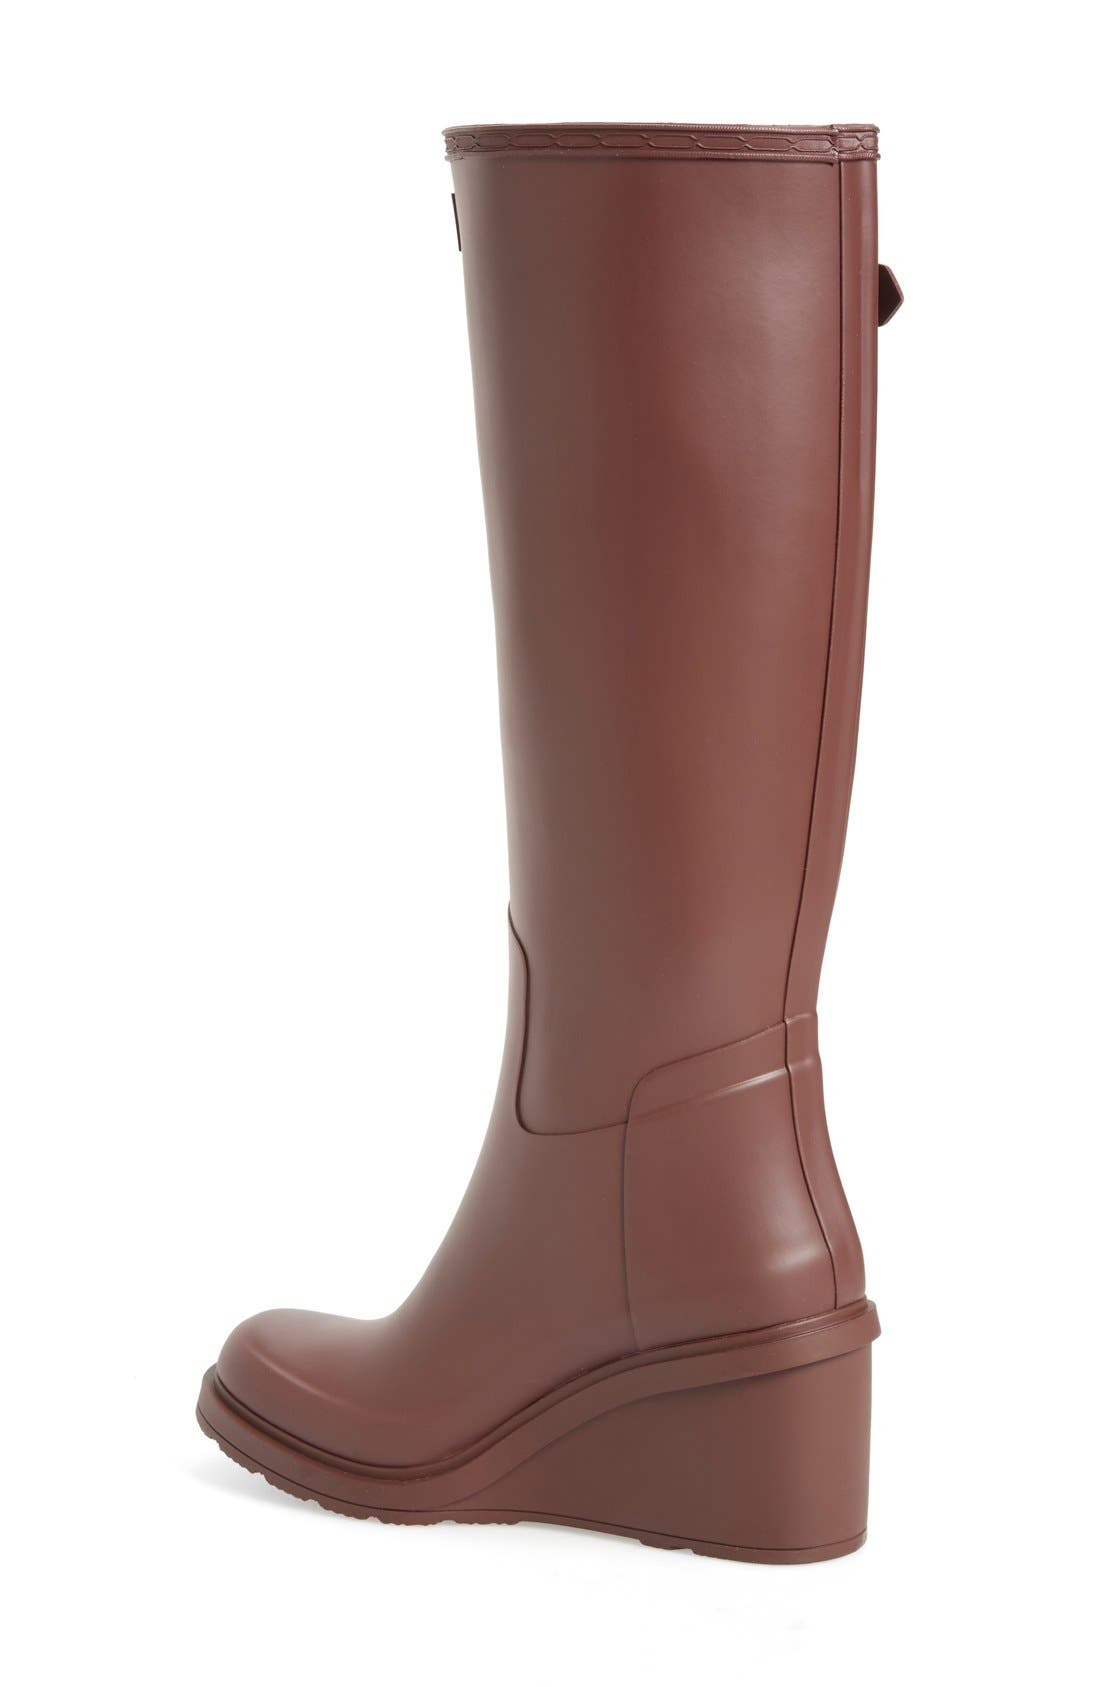 Original Refined Wedge Rain Boot,                             Alternate thumbnail 8, color,